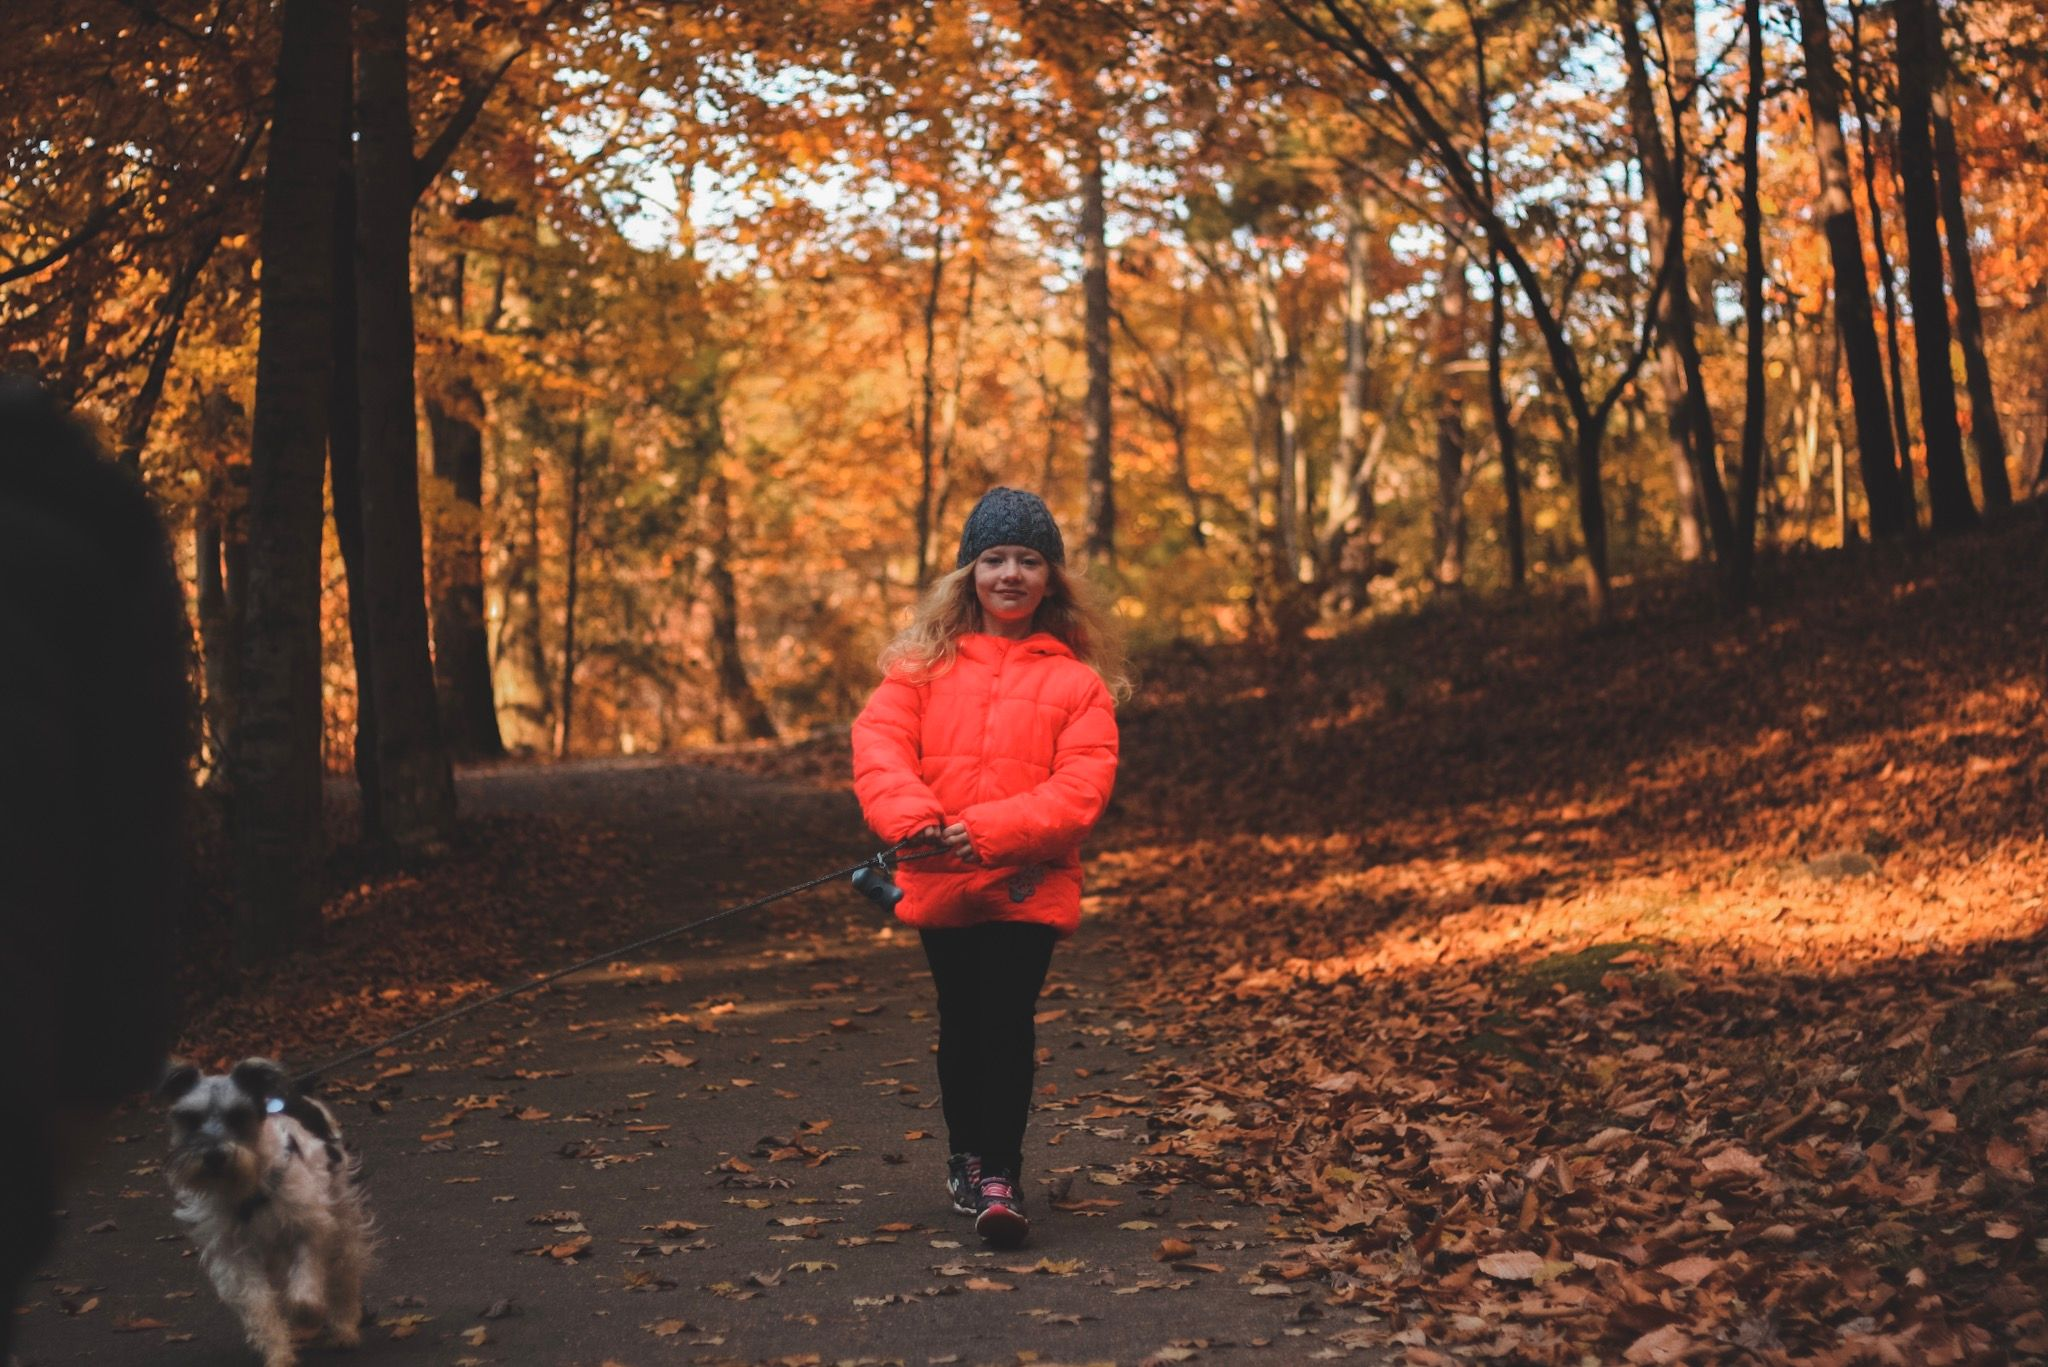 young girl walking through autumn forest walking her miniature schnauzer